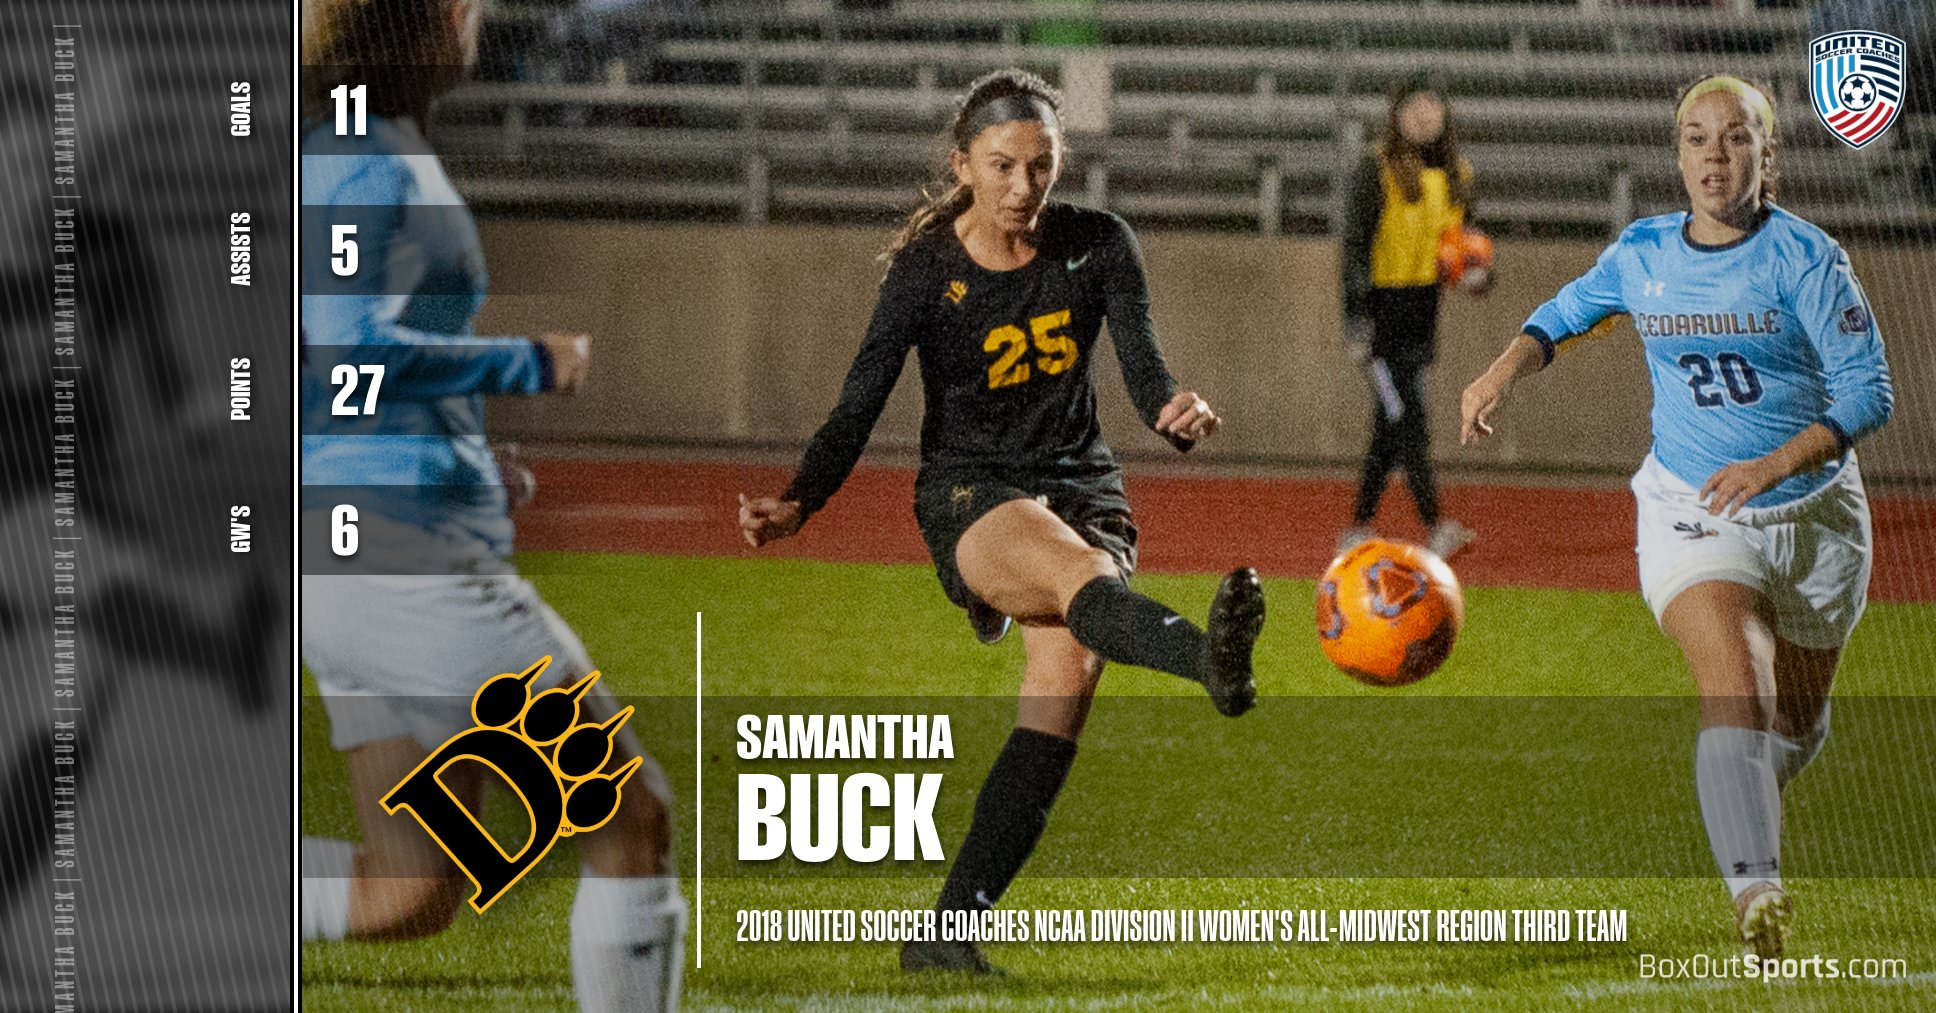 Buck Earns Third Team All-Midwest Region Honors by United Soccer Coaches